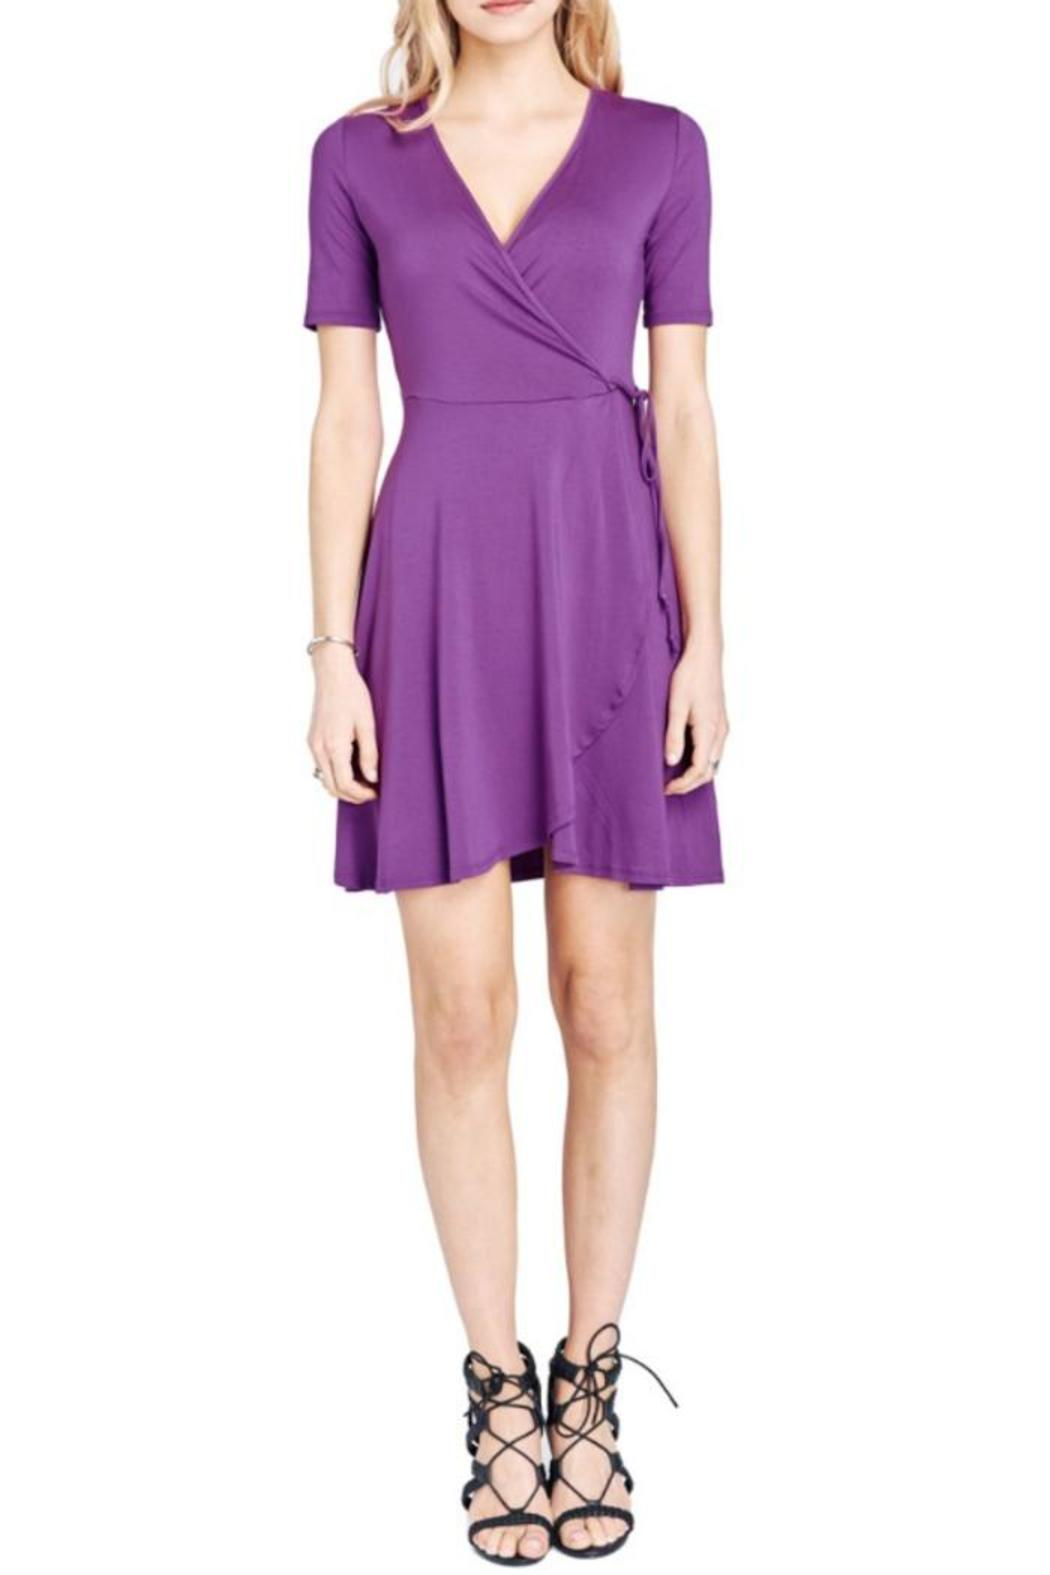 Mai Tai Purple Wrap Dress - Front Full Image